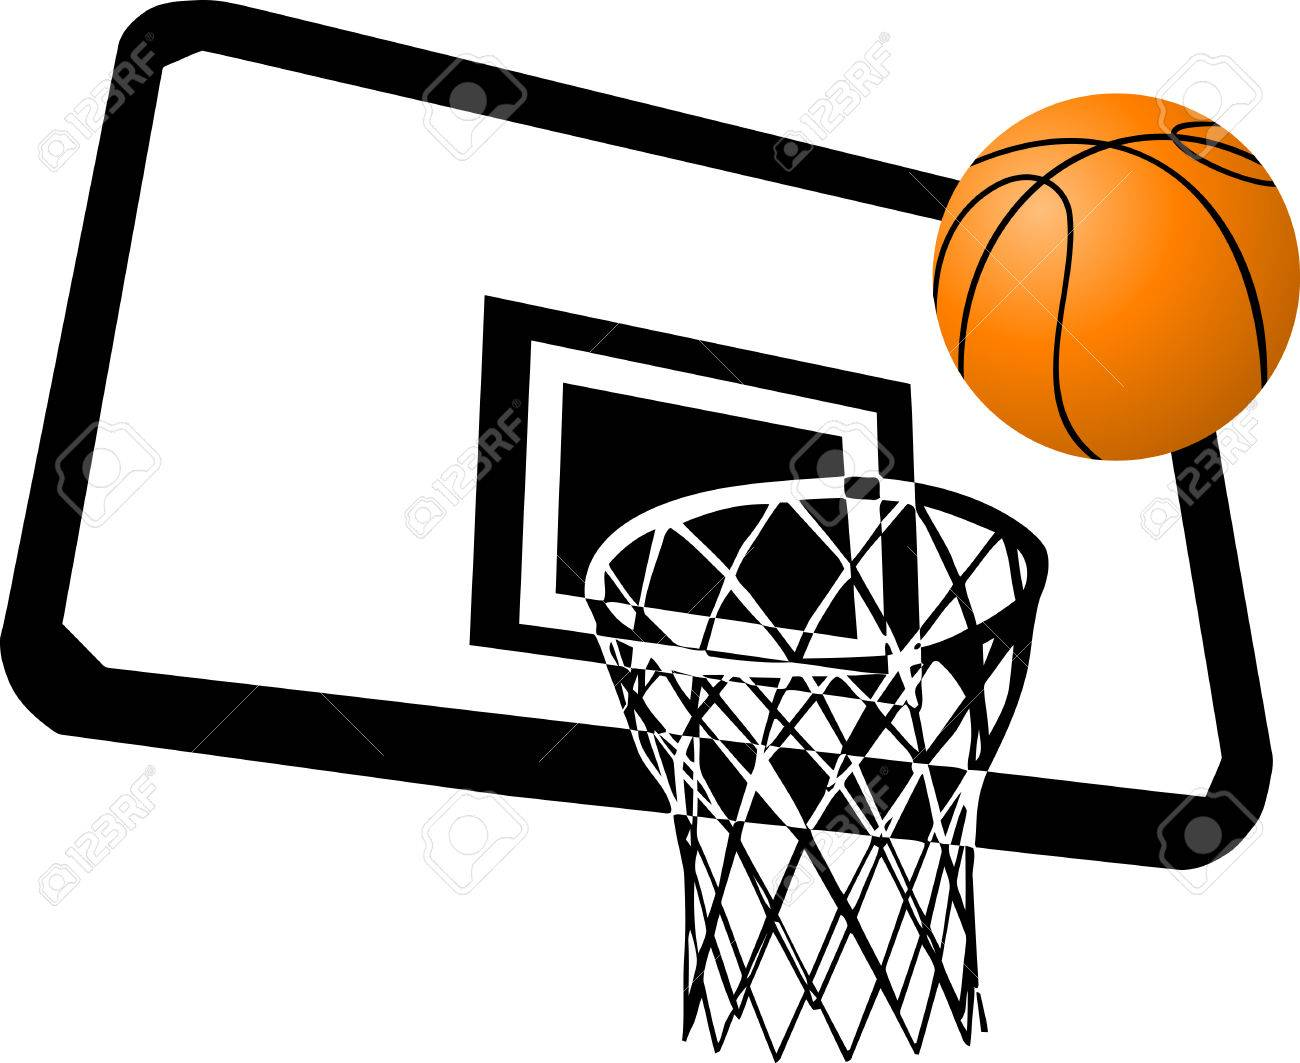 The basketball player throws a ball in a basket Stock Vector - 5341620